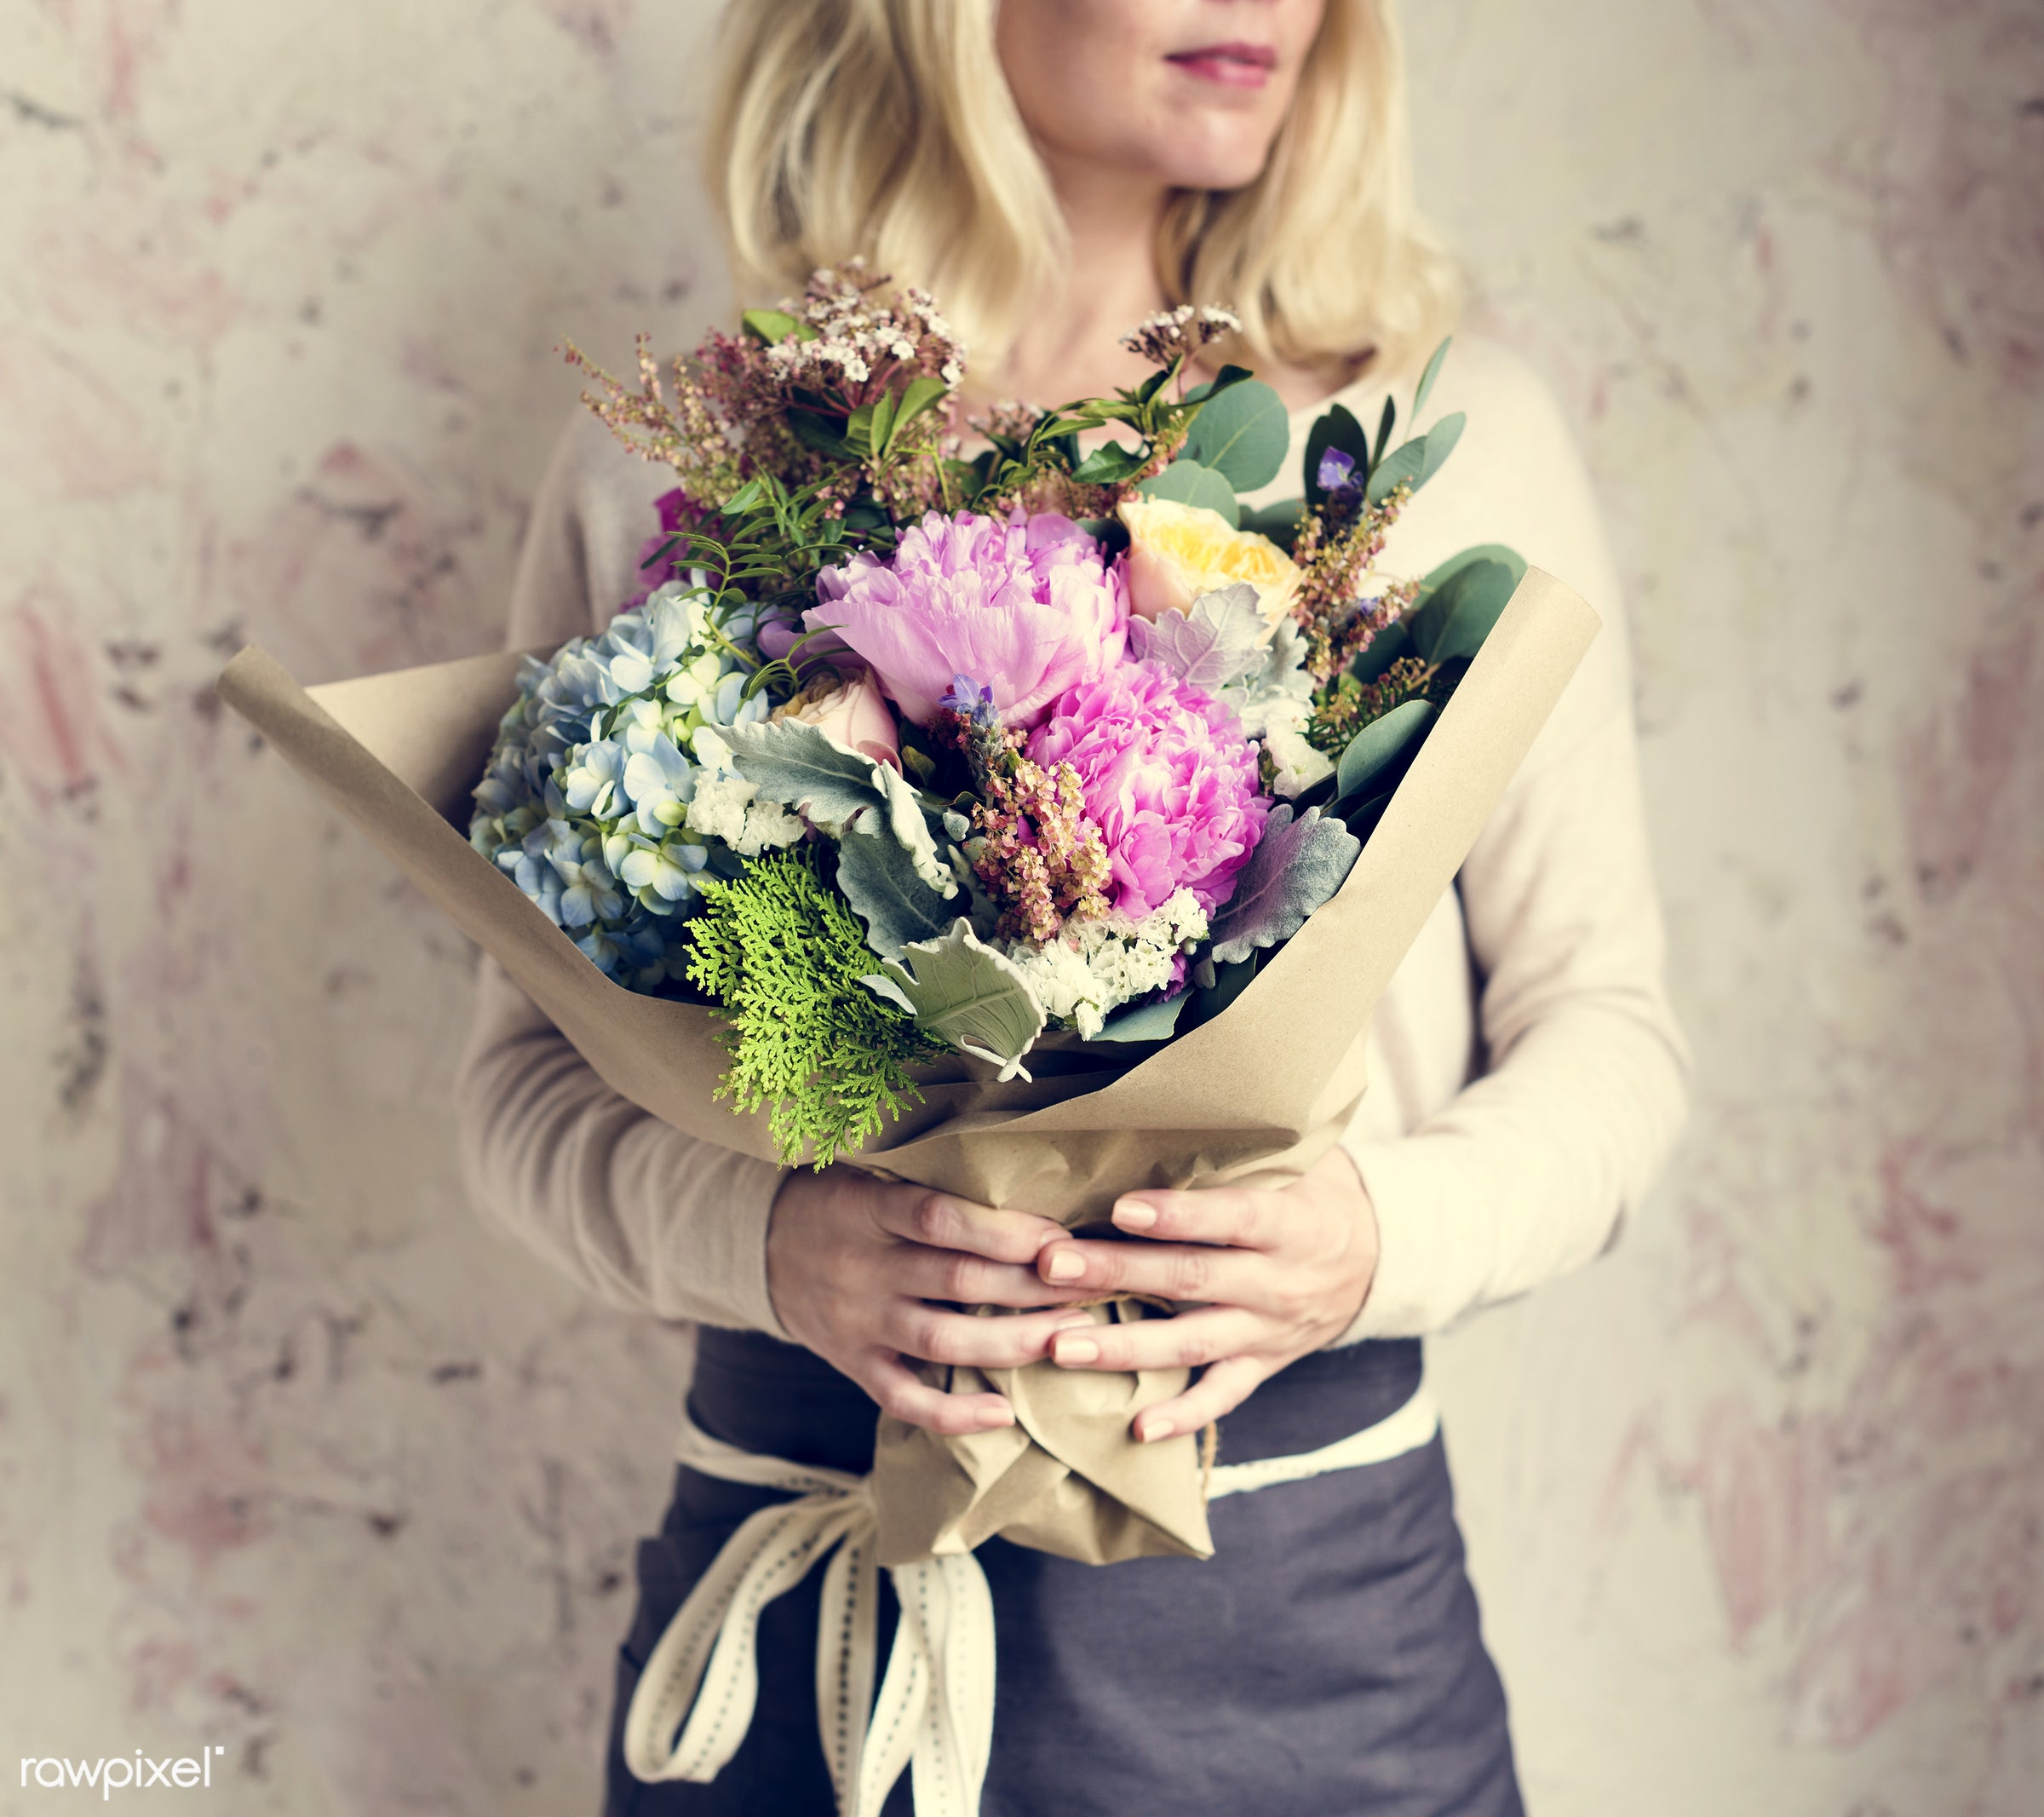 bouquet, person, detail, decorative, colorful, holding, diverse, events, plants, show, hydrangea, spring, people, blossom,...